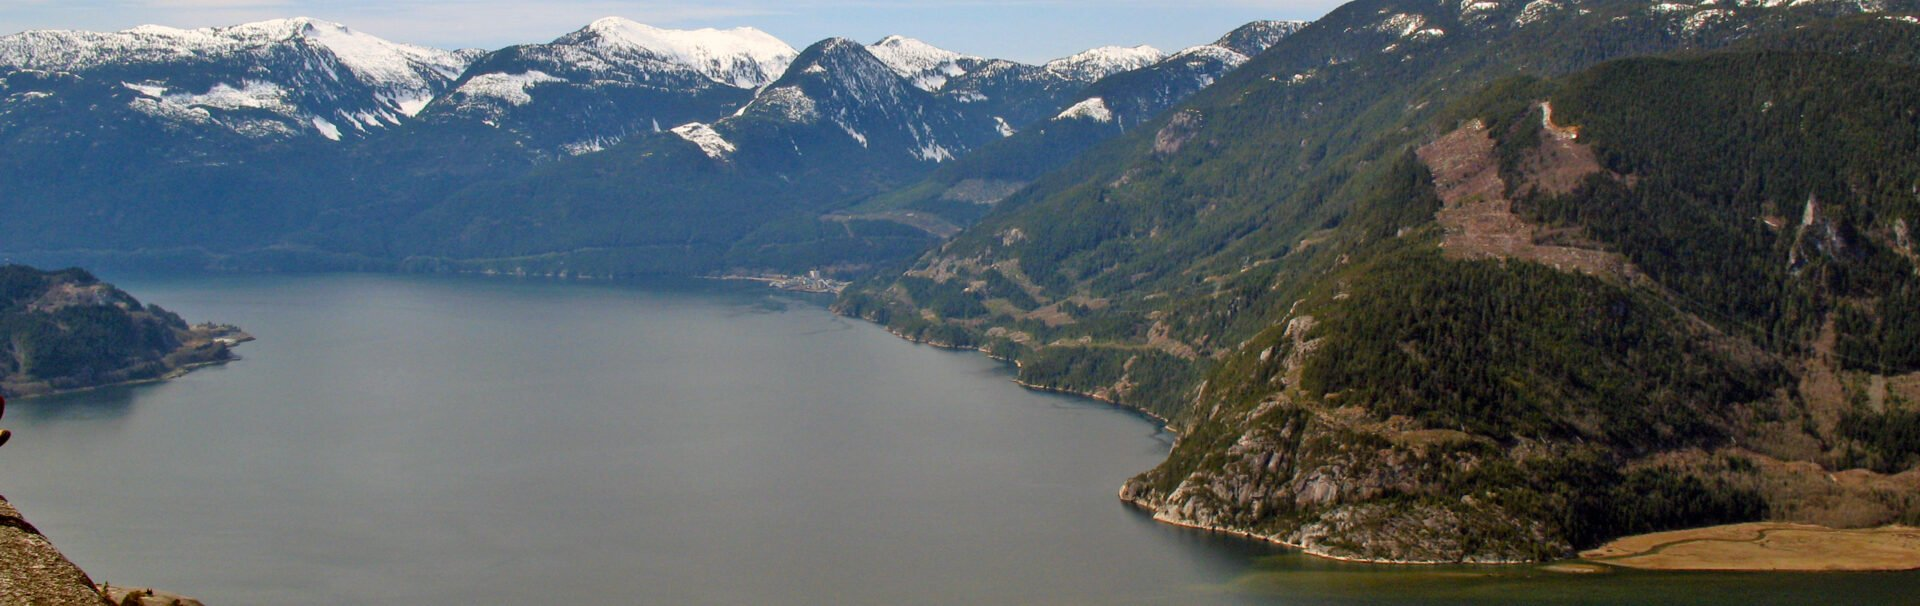 View of Howe Sound from the Chief